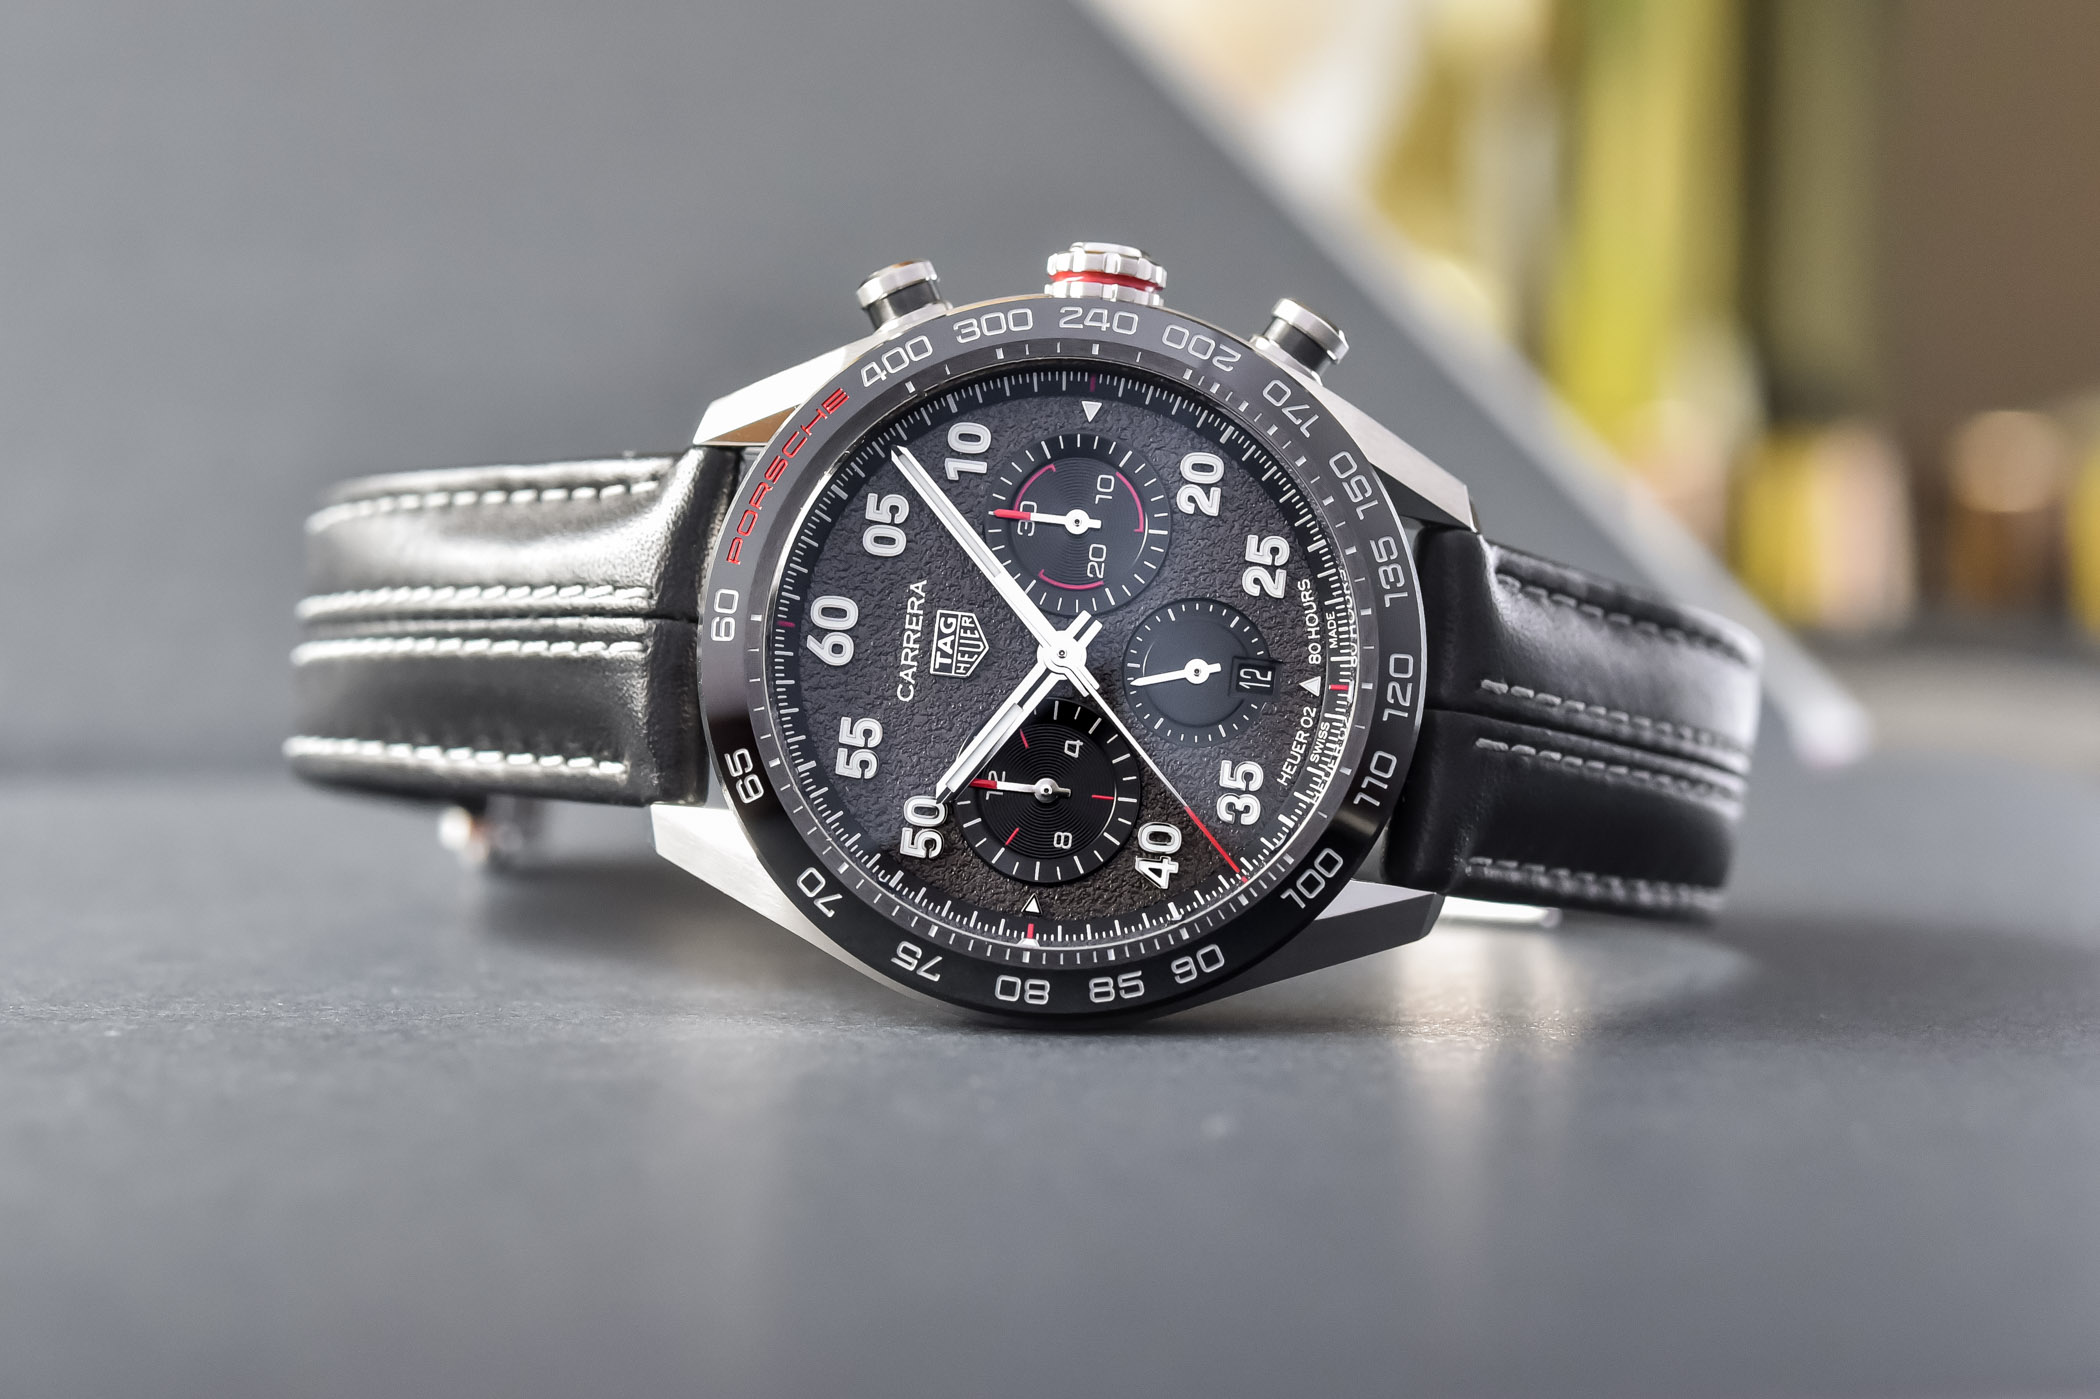 TAG Heuer Carrera Porsche Chronograph Special Edition 44mm Calibre Heuer 02 Automatic